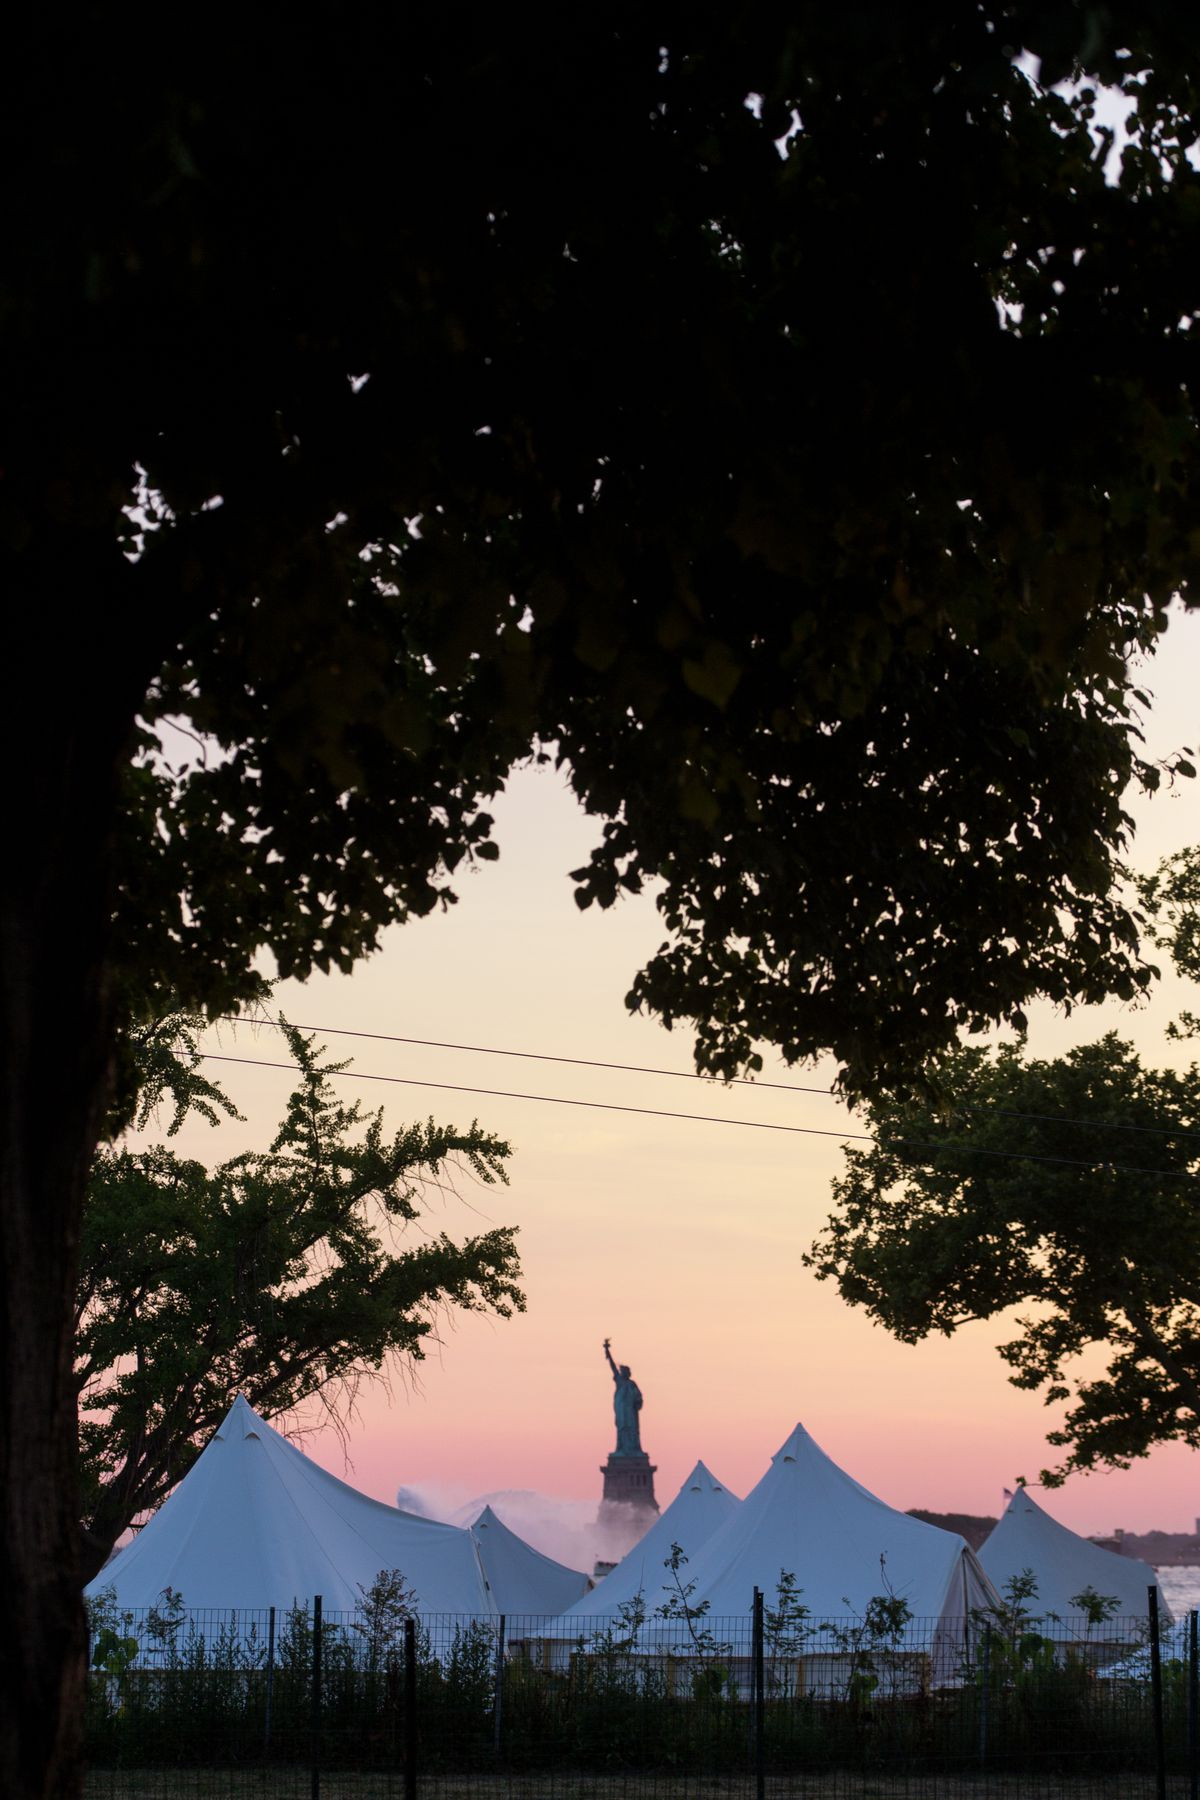 Sunset view of glamping tents with Statue of Liberty in the background.